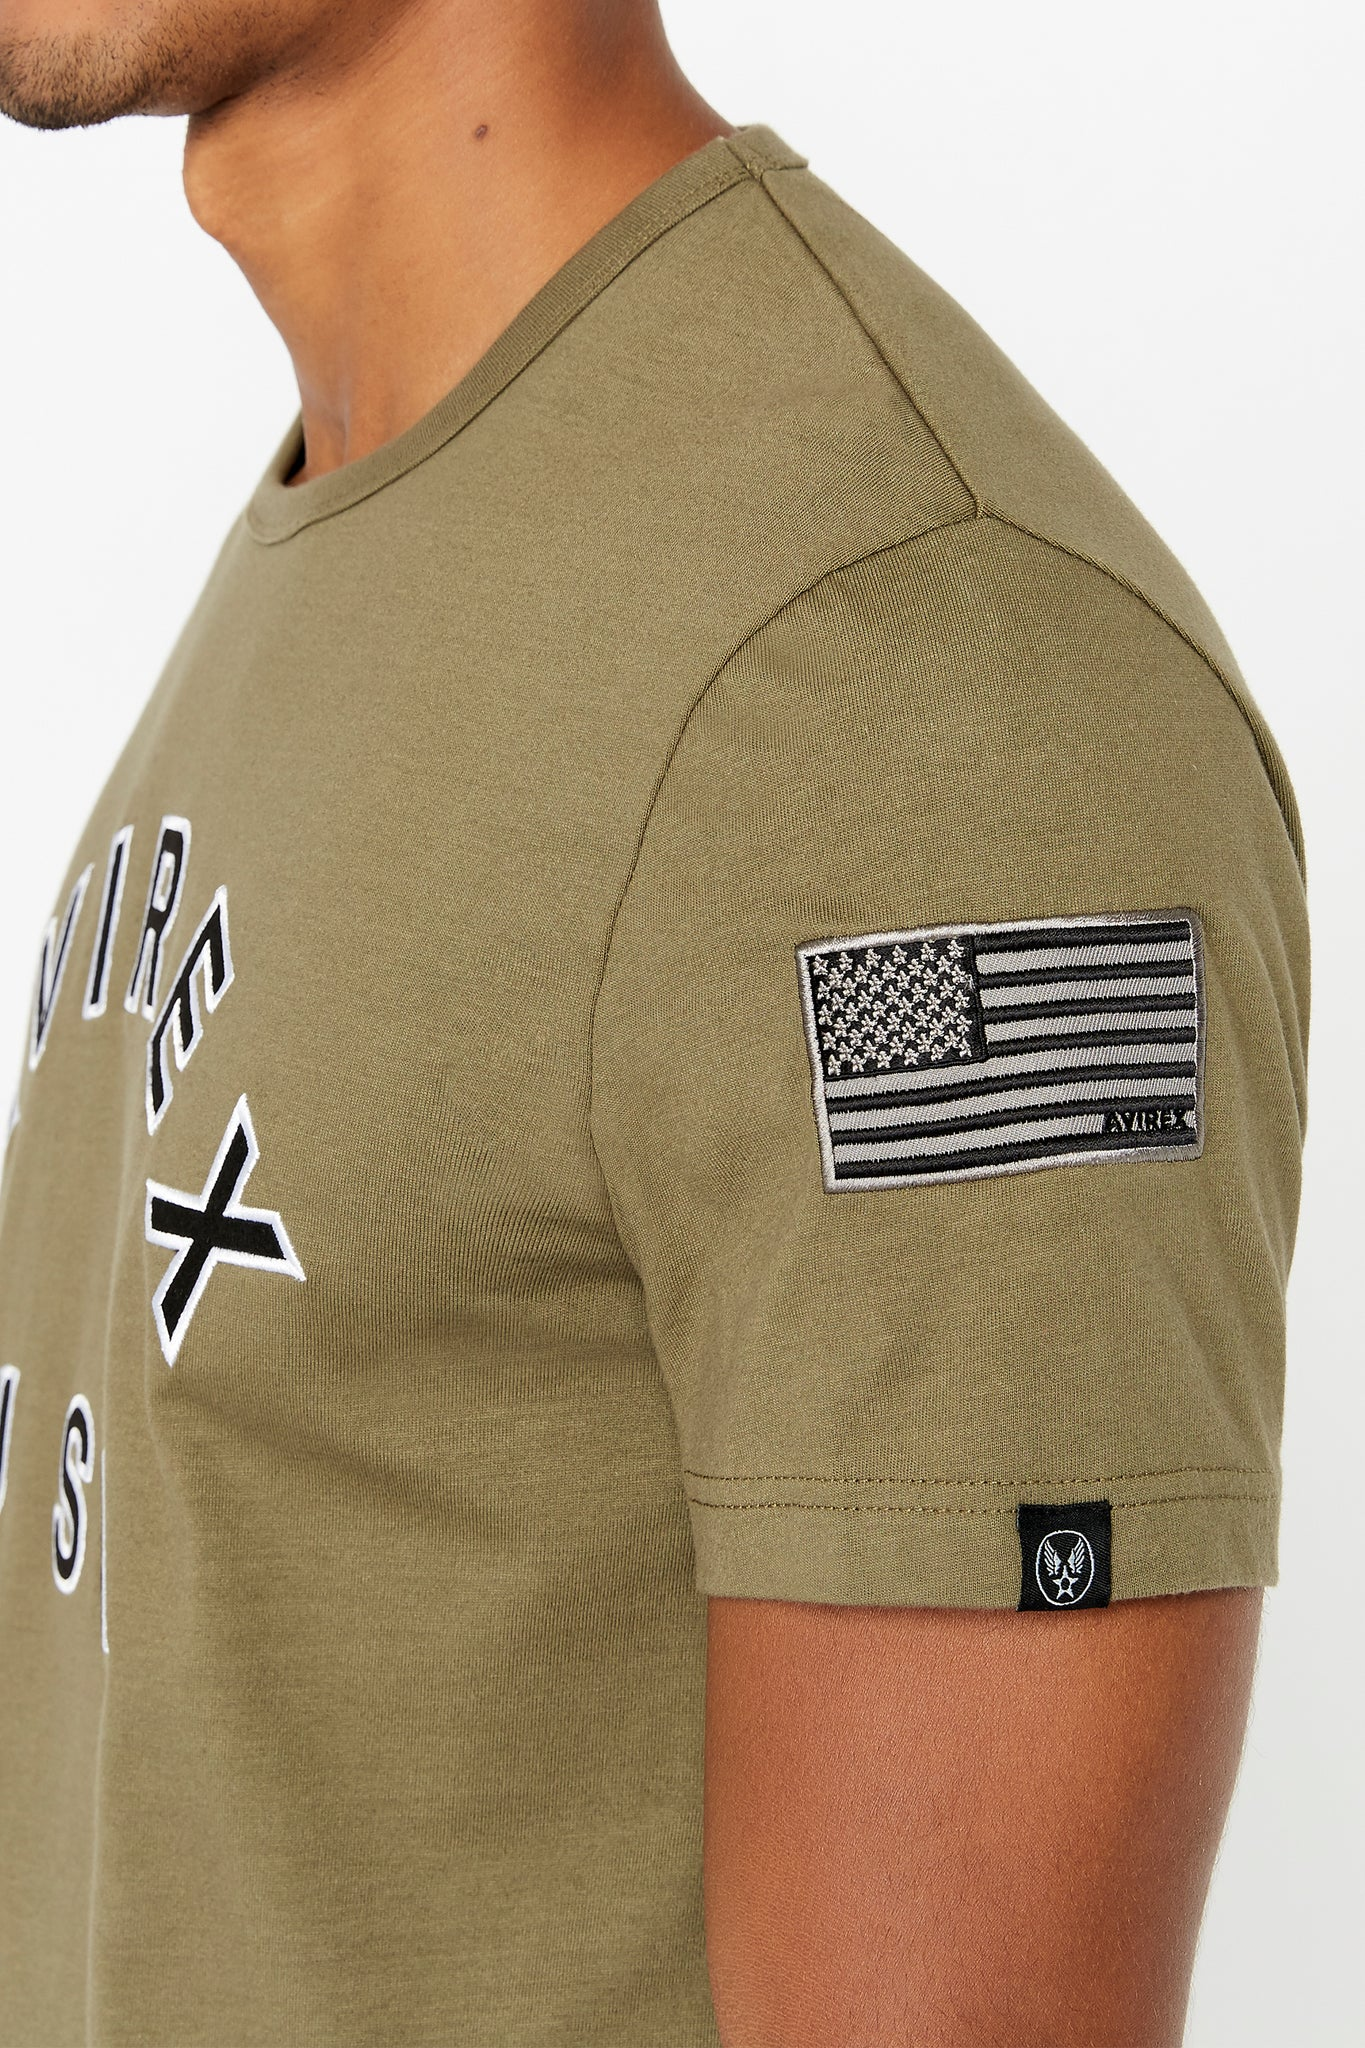 Detailed view of patch and small logo tag on left sleeve